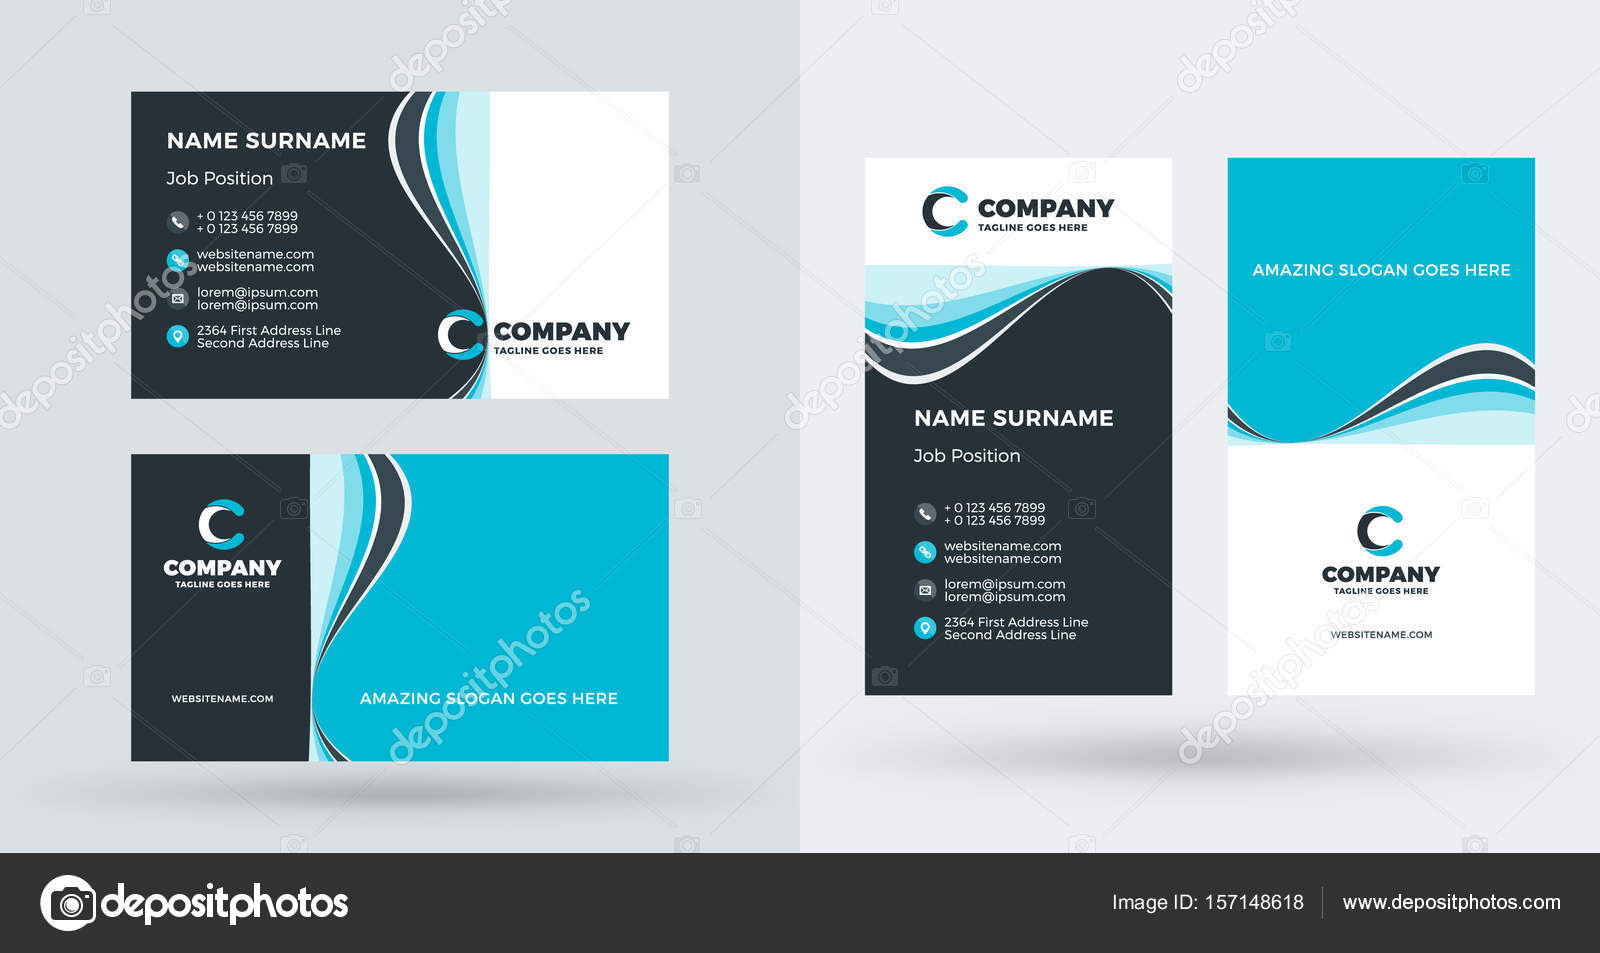 Business Card Website Template Free